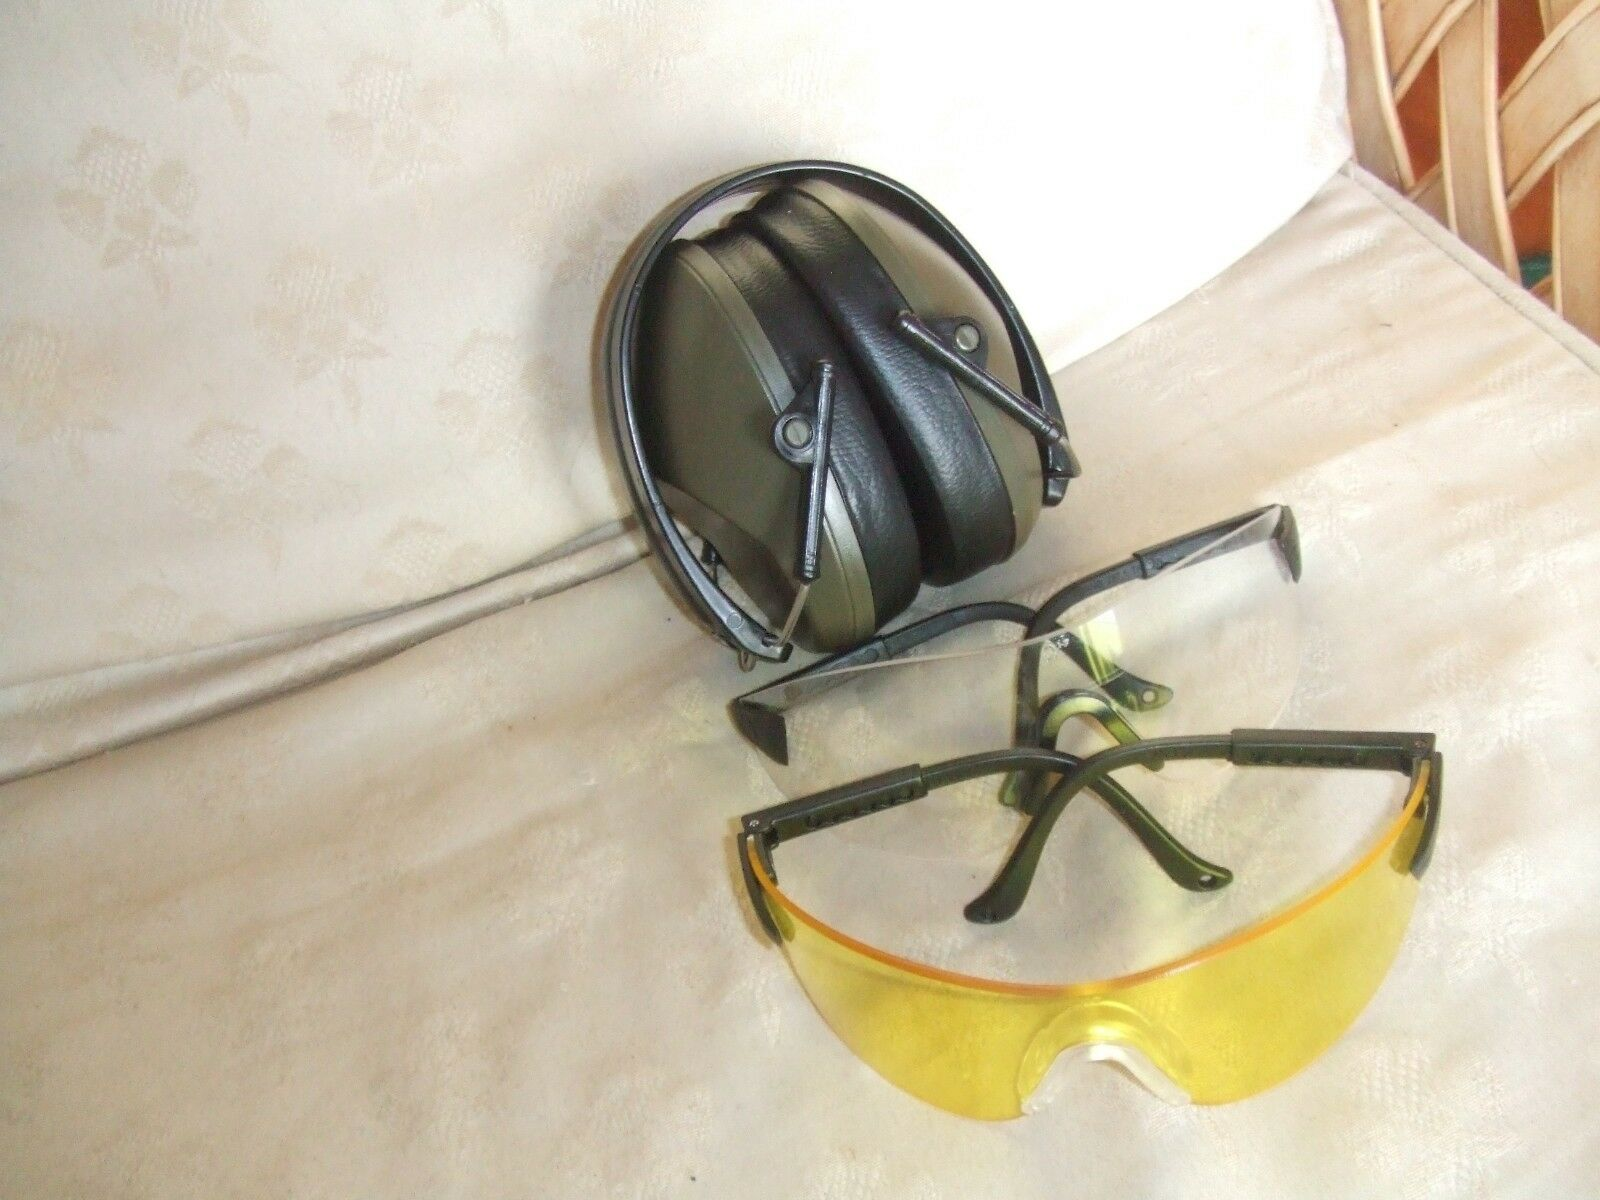 Game Rifle Clay Pigeon Shooting Safety Glasses & Compact Ear Defenders Defenders Ear Muffs cb5702